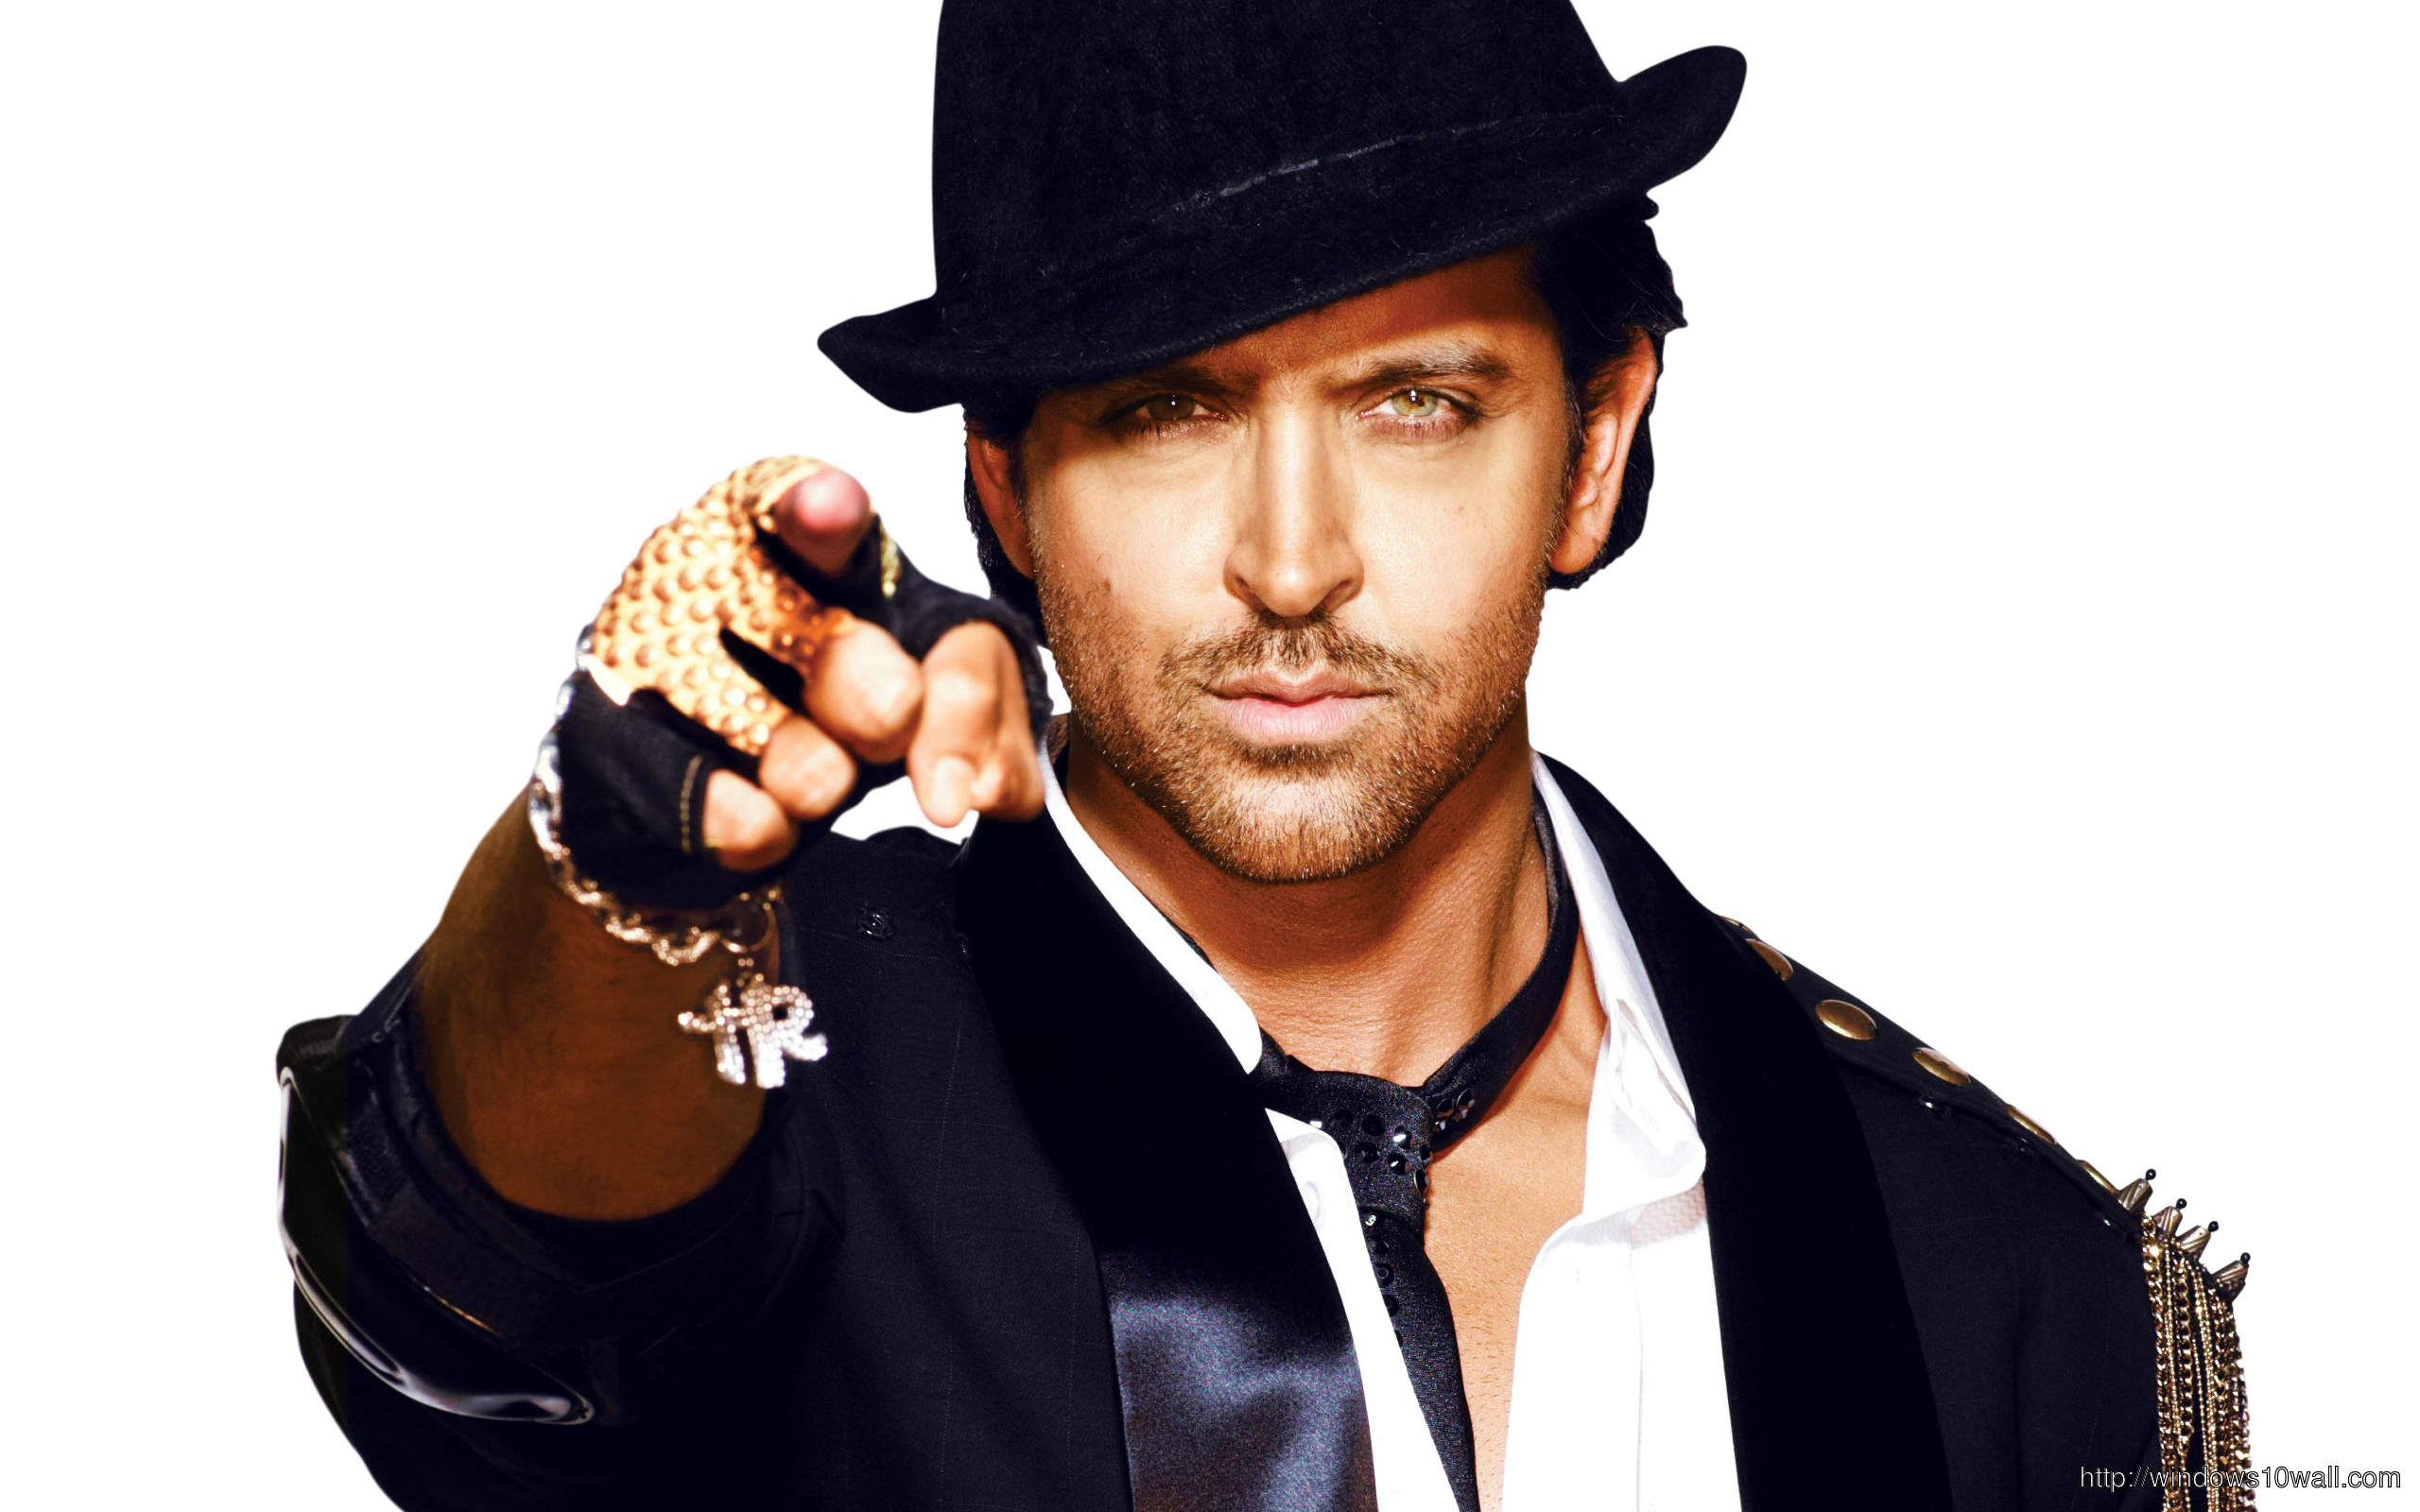 krrish 3 movie star hrithik roshan background wallpaper - windows 10